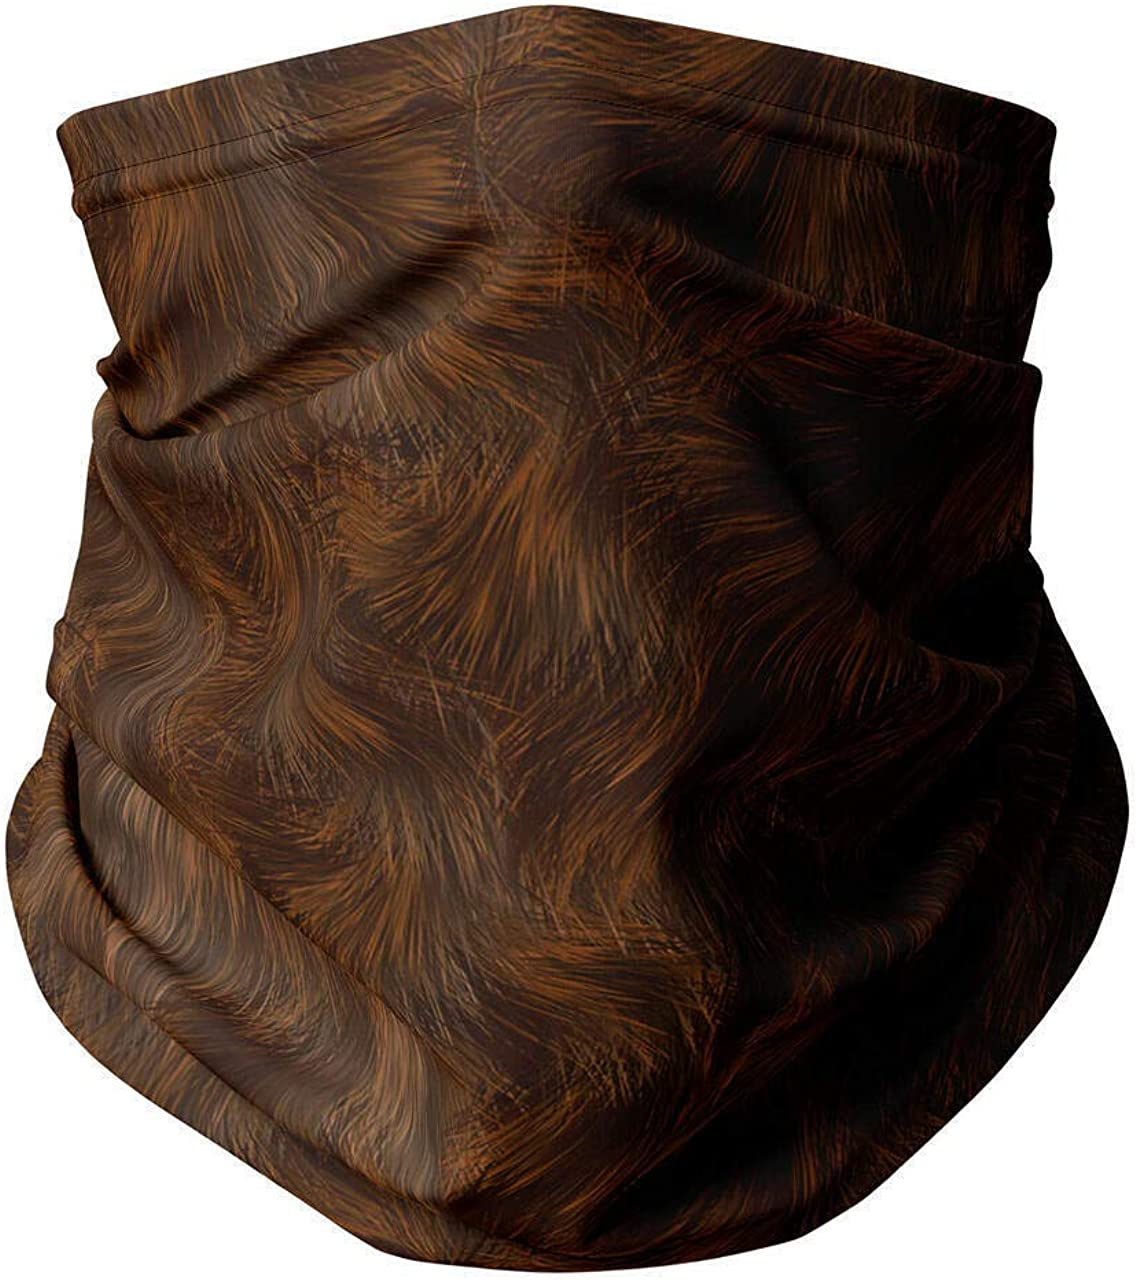 Neck Gaiter Face Covering - Wookie Fur SW Inspired